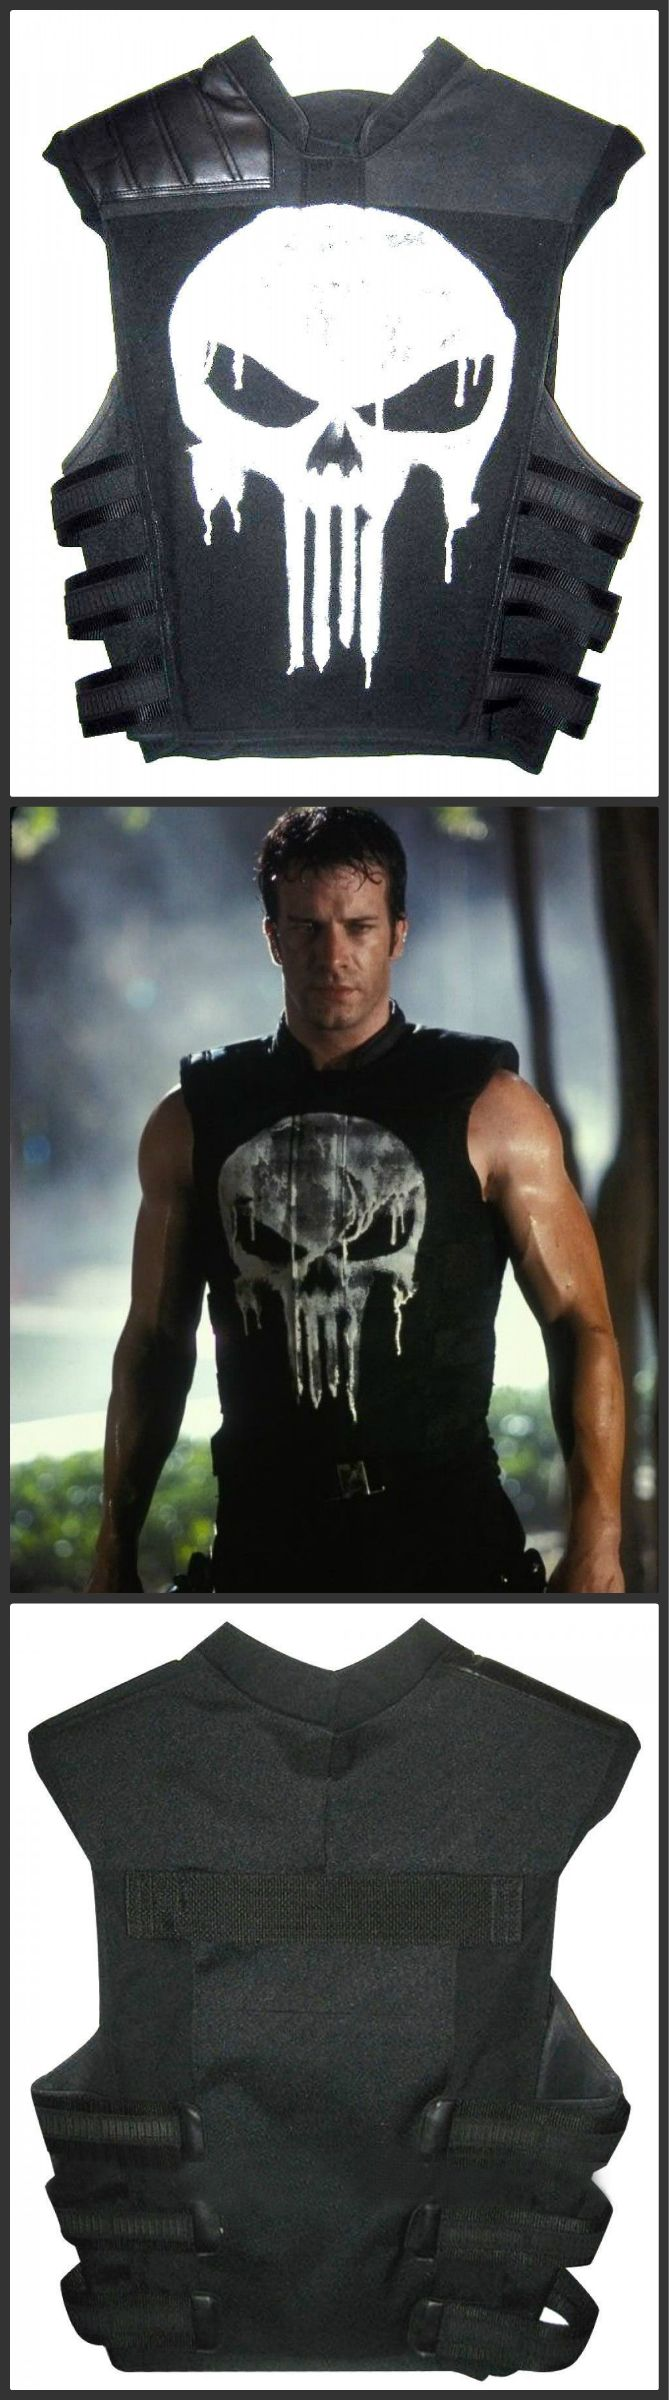 Inspire from movie Punisher, our online store DURV offers you Punisher Black Leather Vest carries by Thomas Jane.